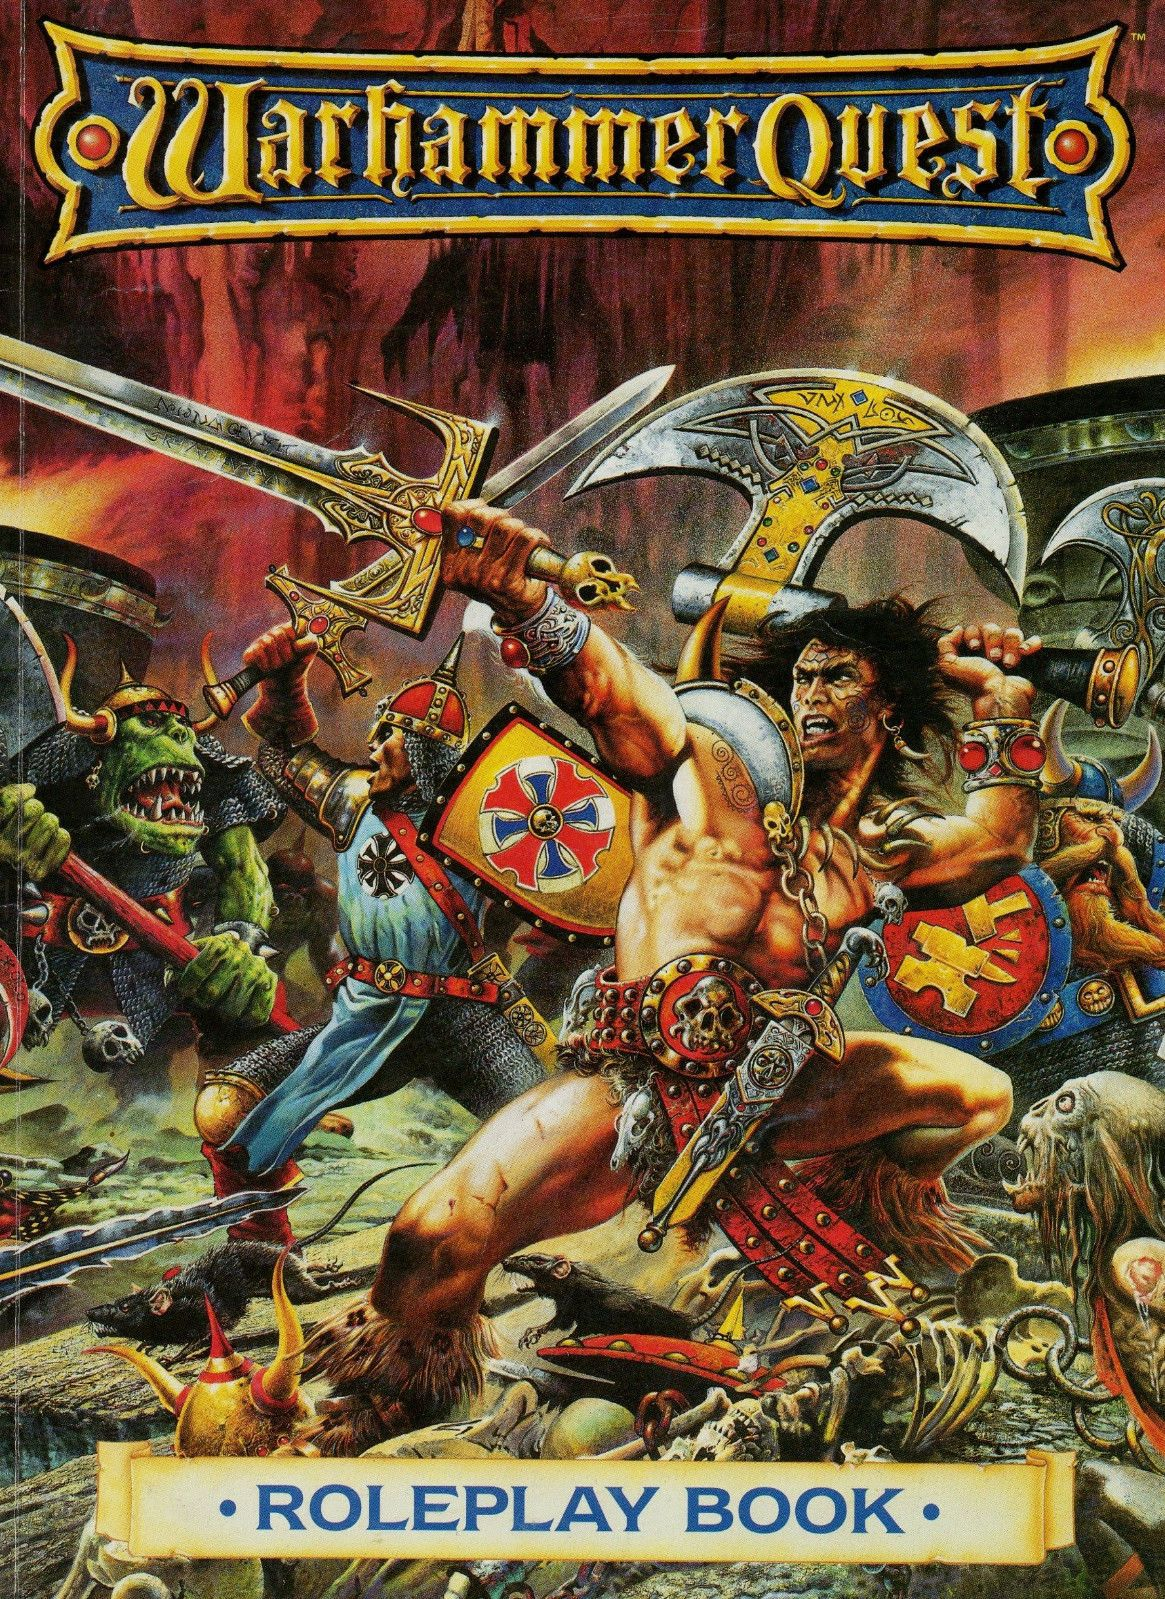 Warhammer Quest Roleplay Book 1995 Games UK Andy